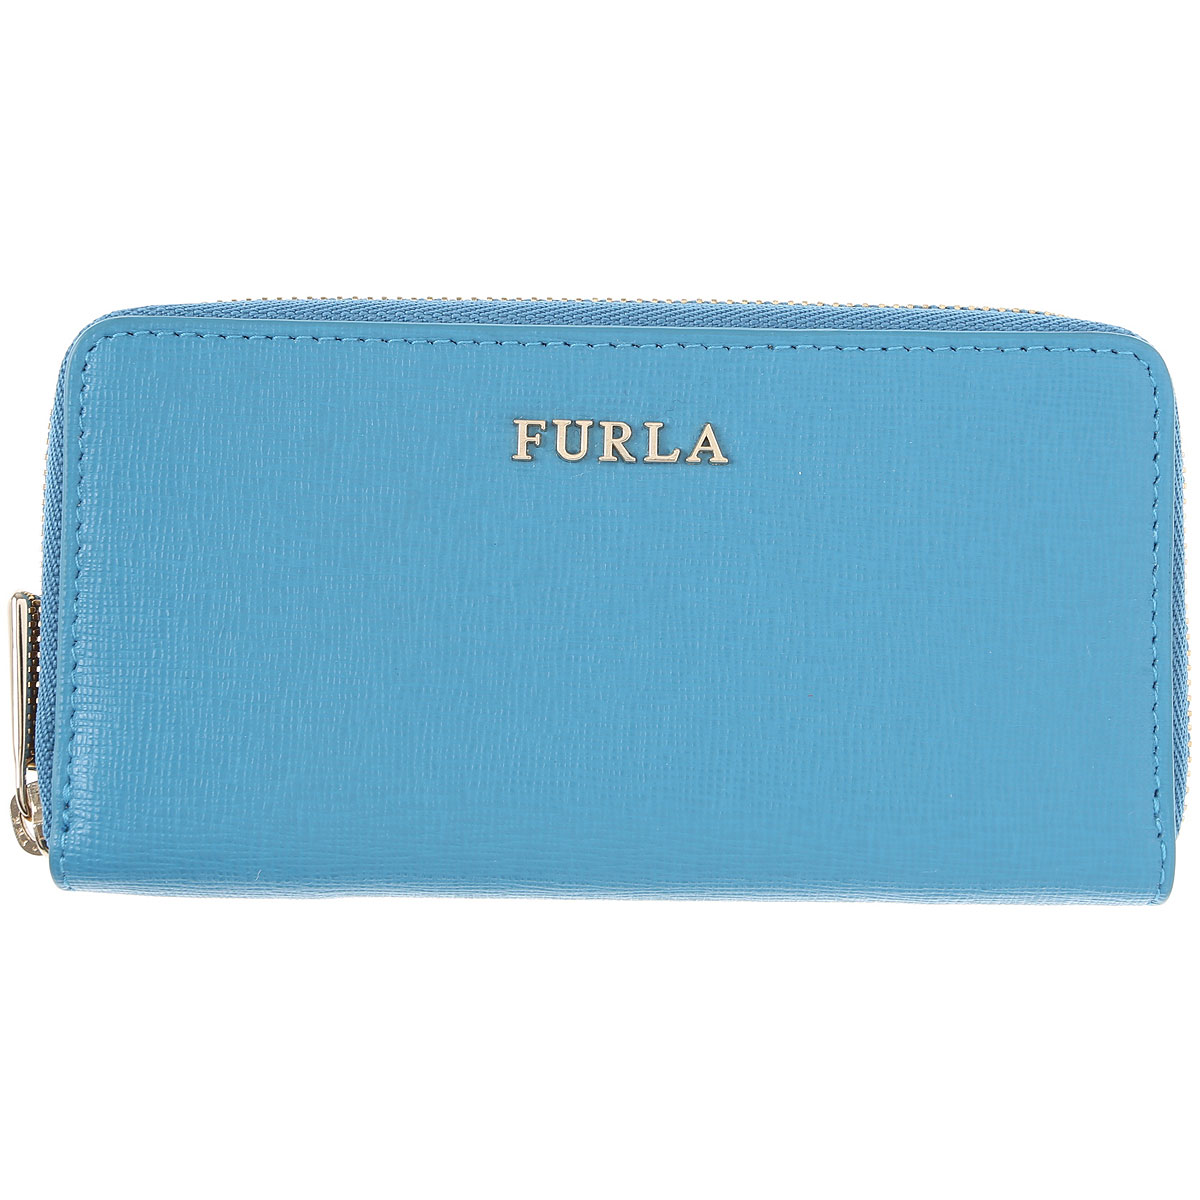 Furla Key Chain for Women, Key Ring On Sale in Outlet, Cobalt Blue, Leather, 2019